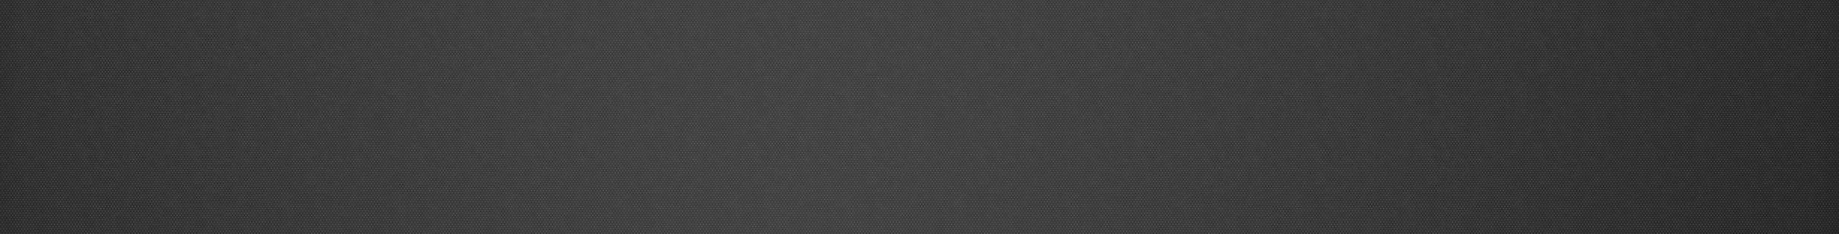 4KjcRg2-matte-black-wallpaper.png